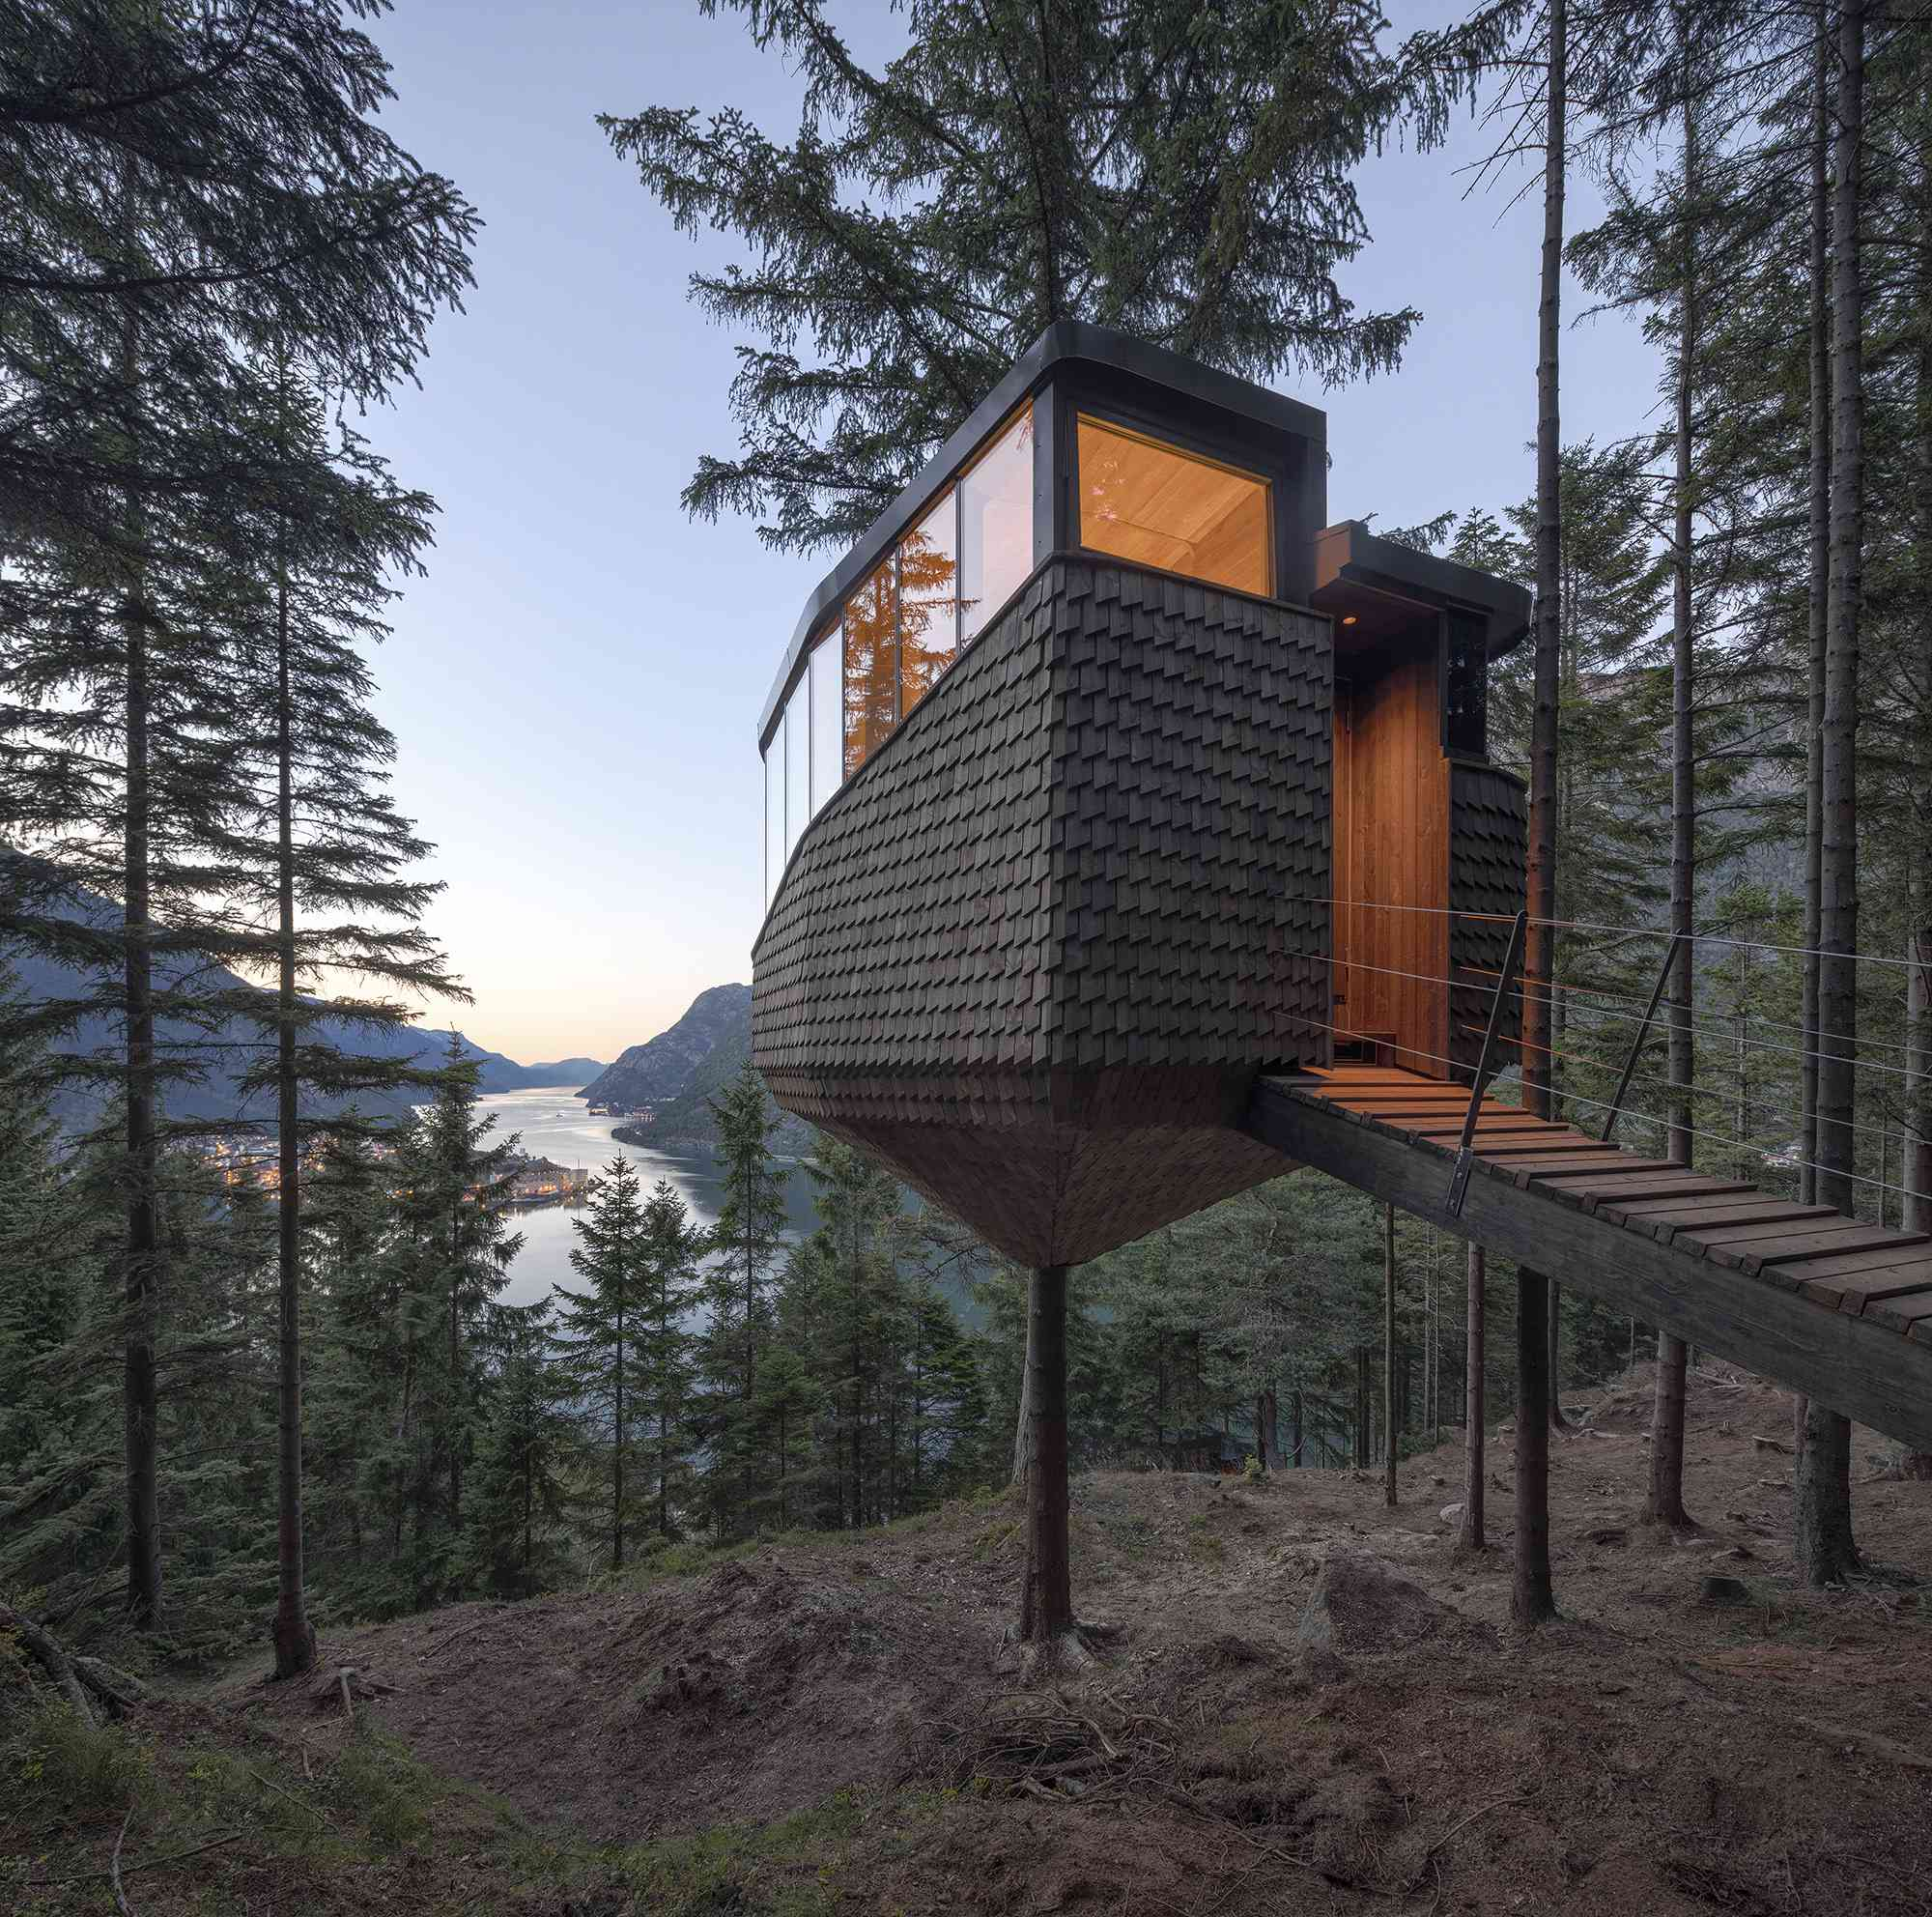 Woodnest treehouse cabin by Helen & Hard Architects exterior and view of entry bridge